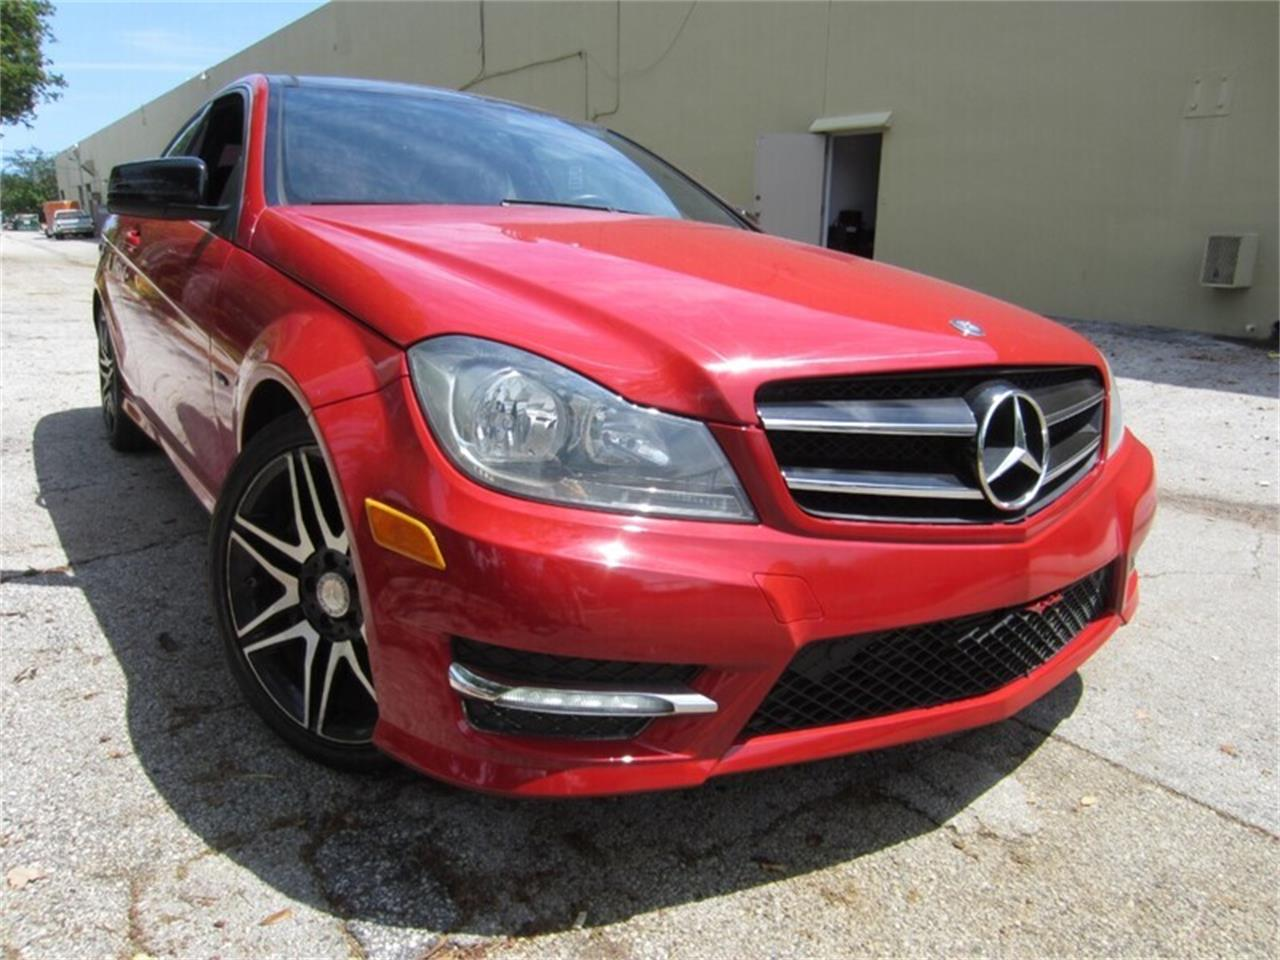 2013 Mercedes-Benz C250 for sale in Delray Beach, FL – photo 3